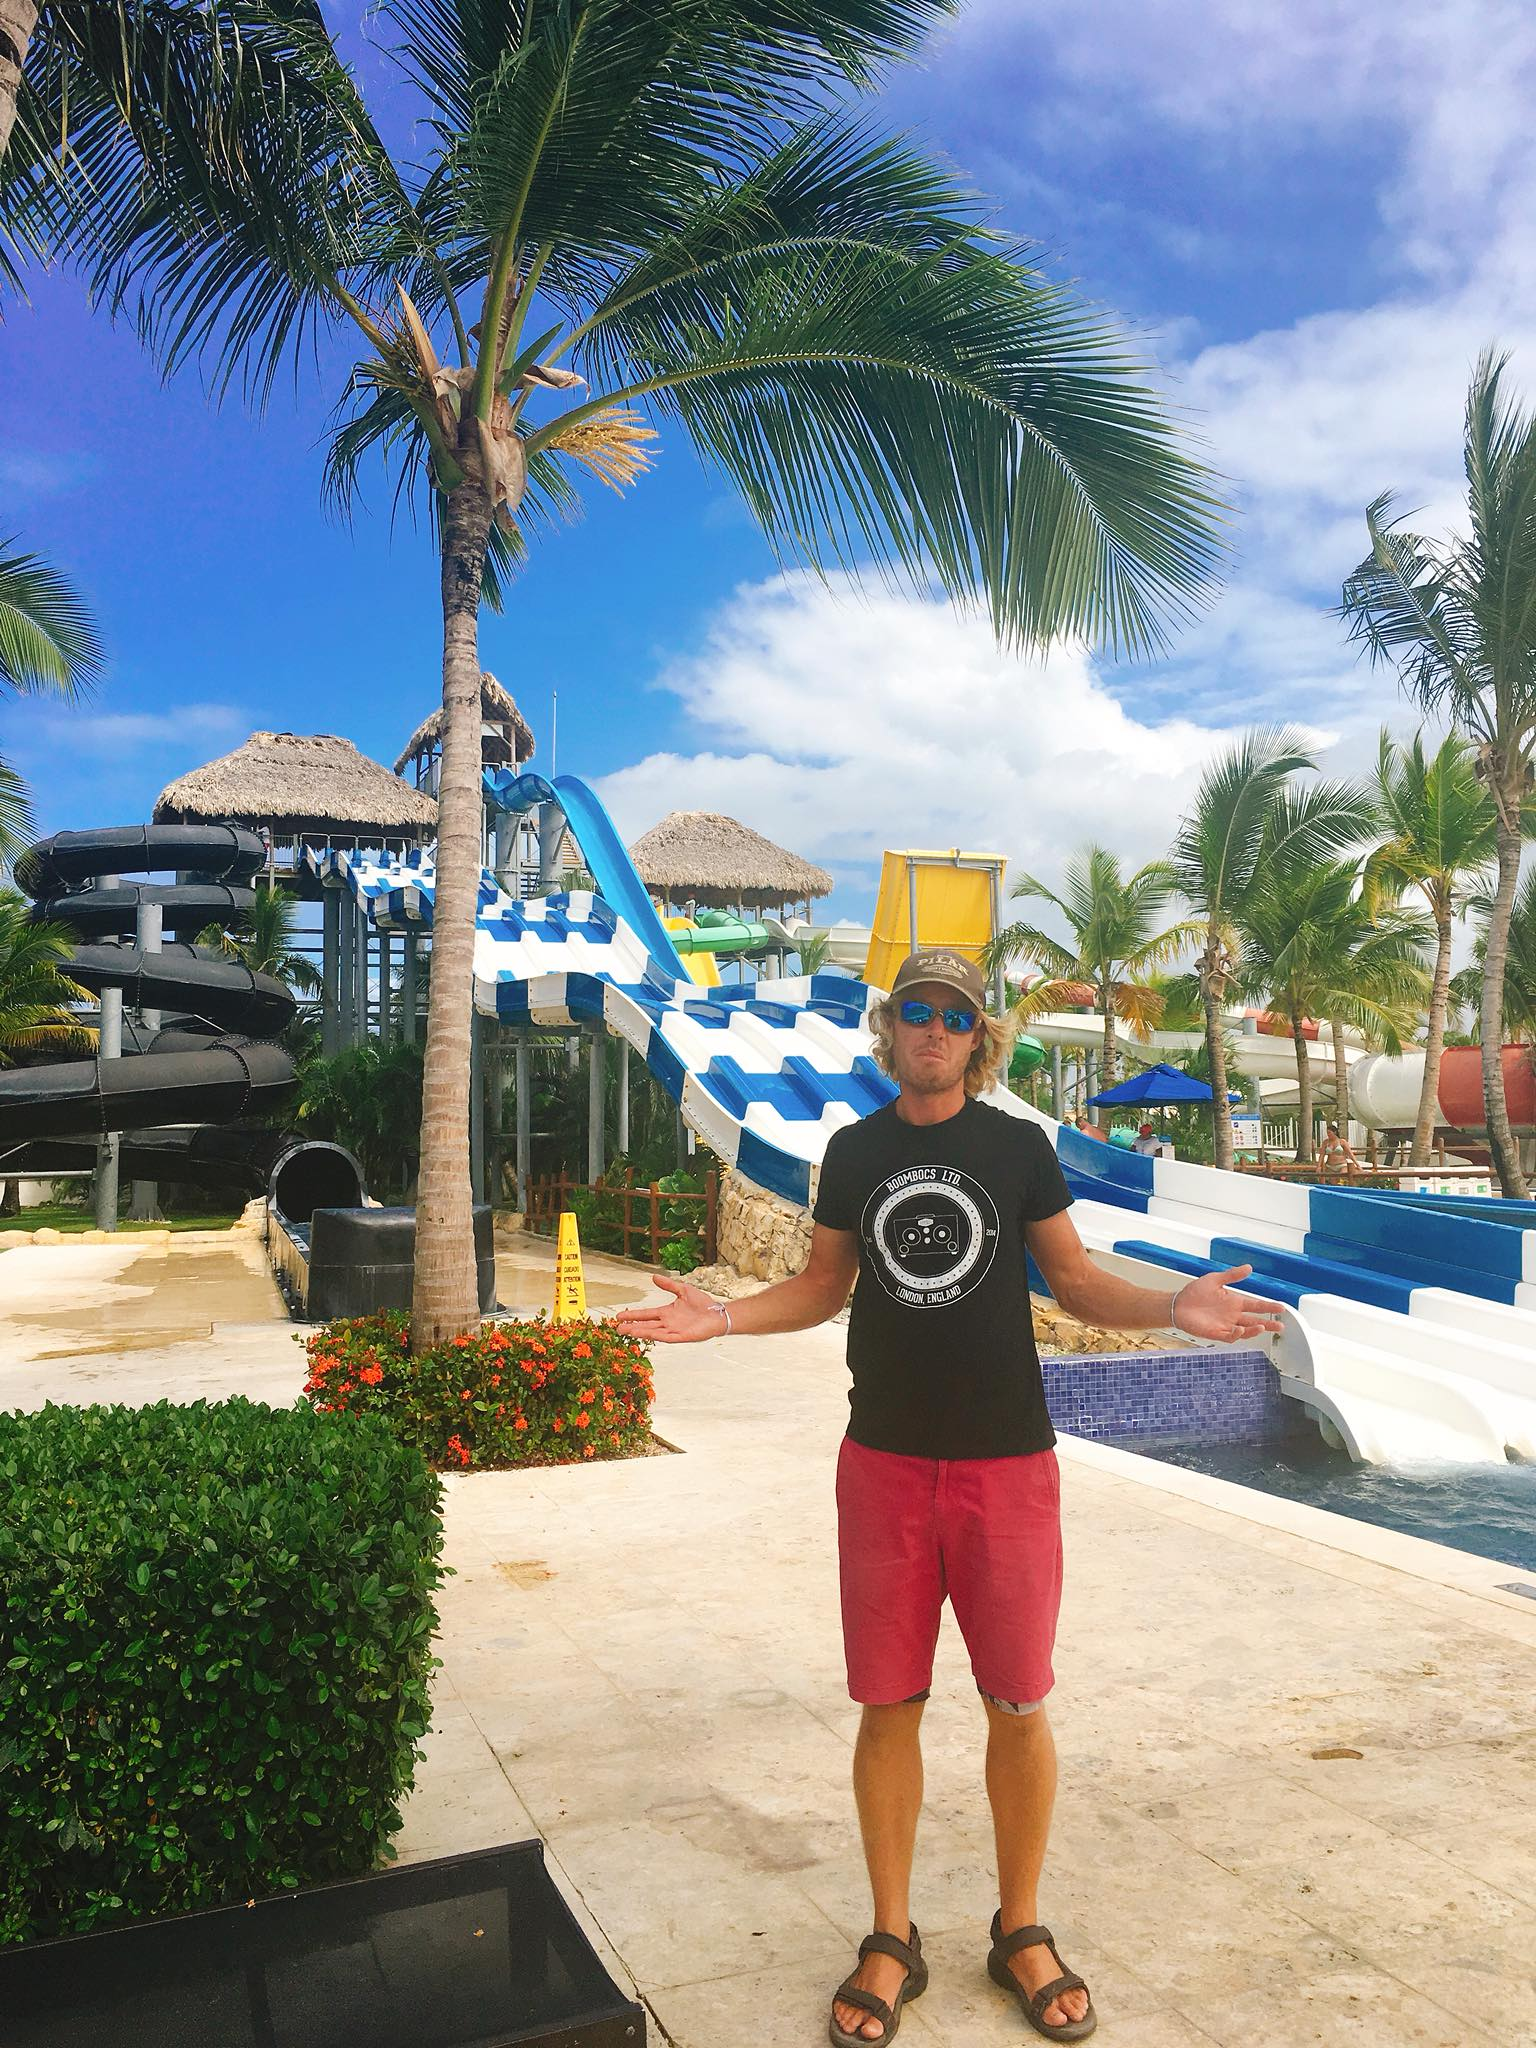 Sailing Life Day 59:  Eating (Non-stop), Splashworld and Dominican Republic Cultural Dance Night here in Hideaway at Royalton Punta Cana!